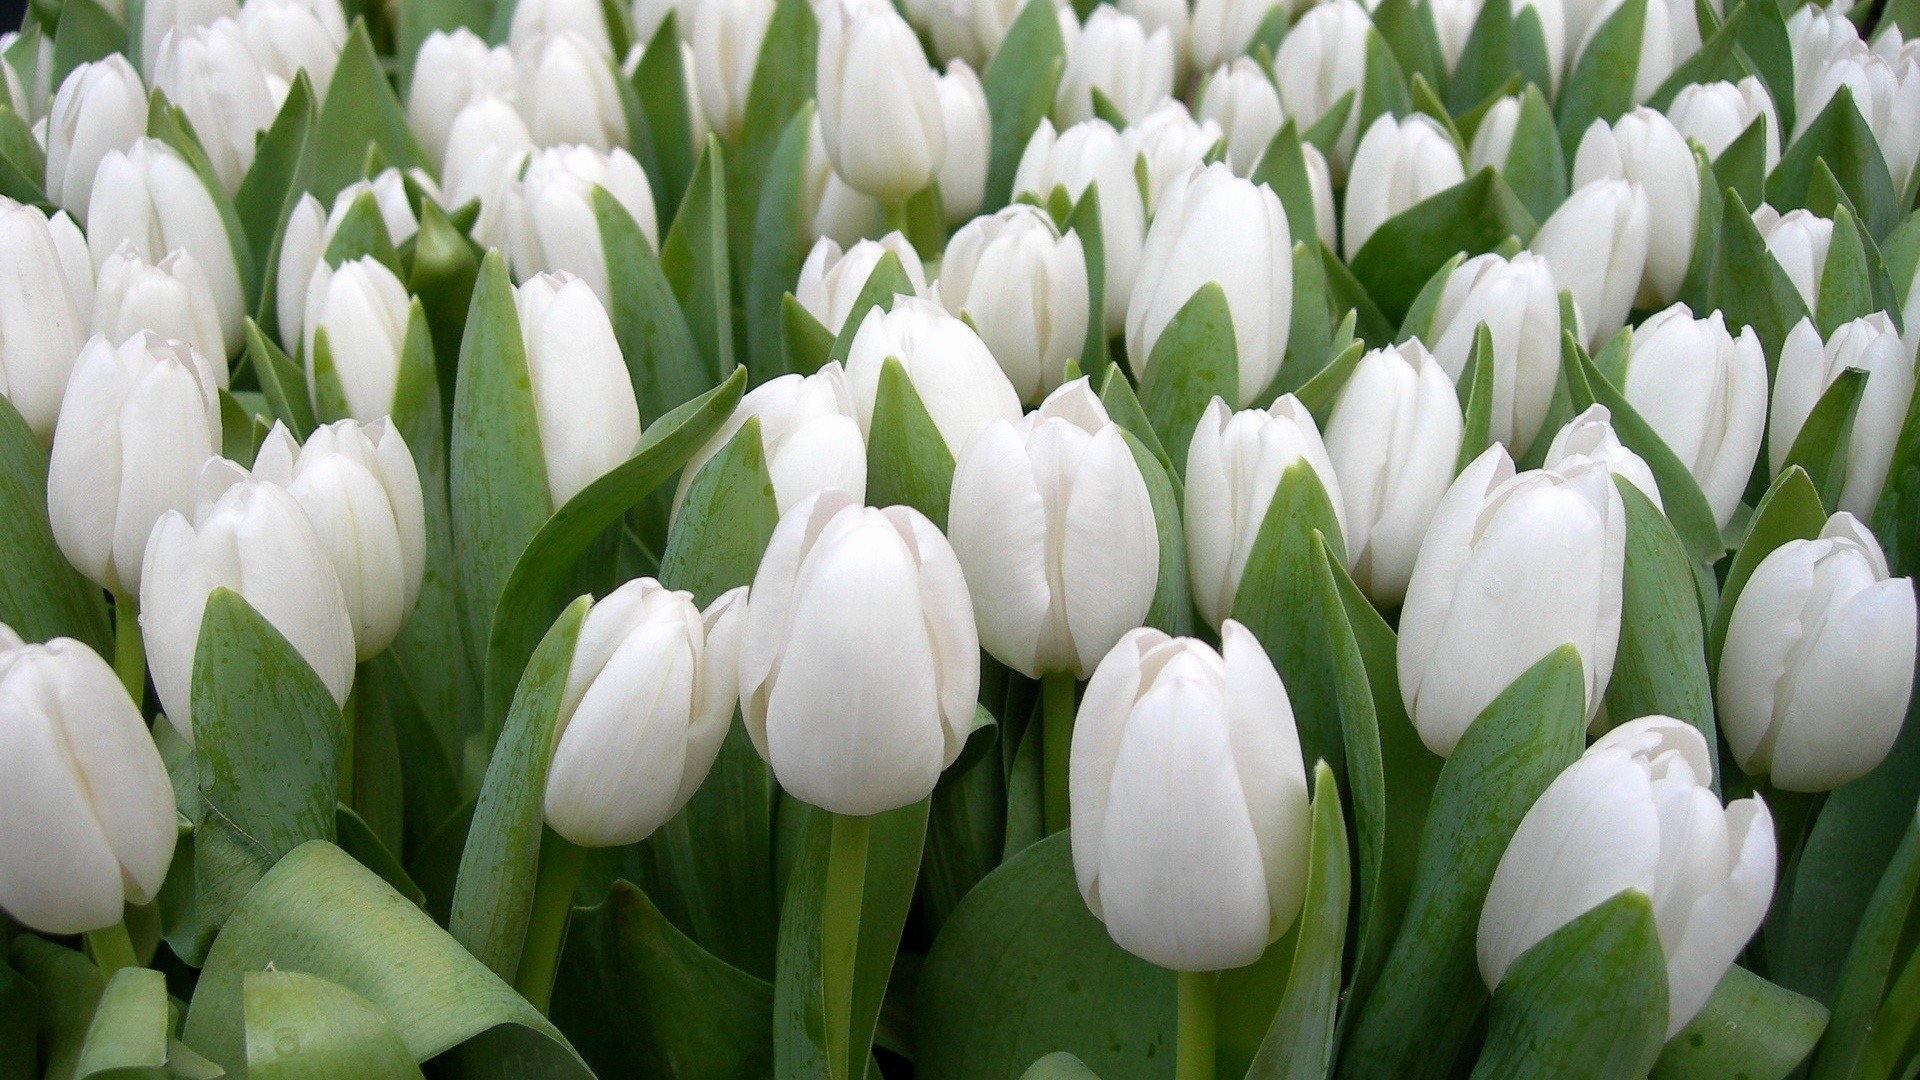 Res: 1920x1080, White tulips flowers beautiful garden wallpapers